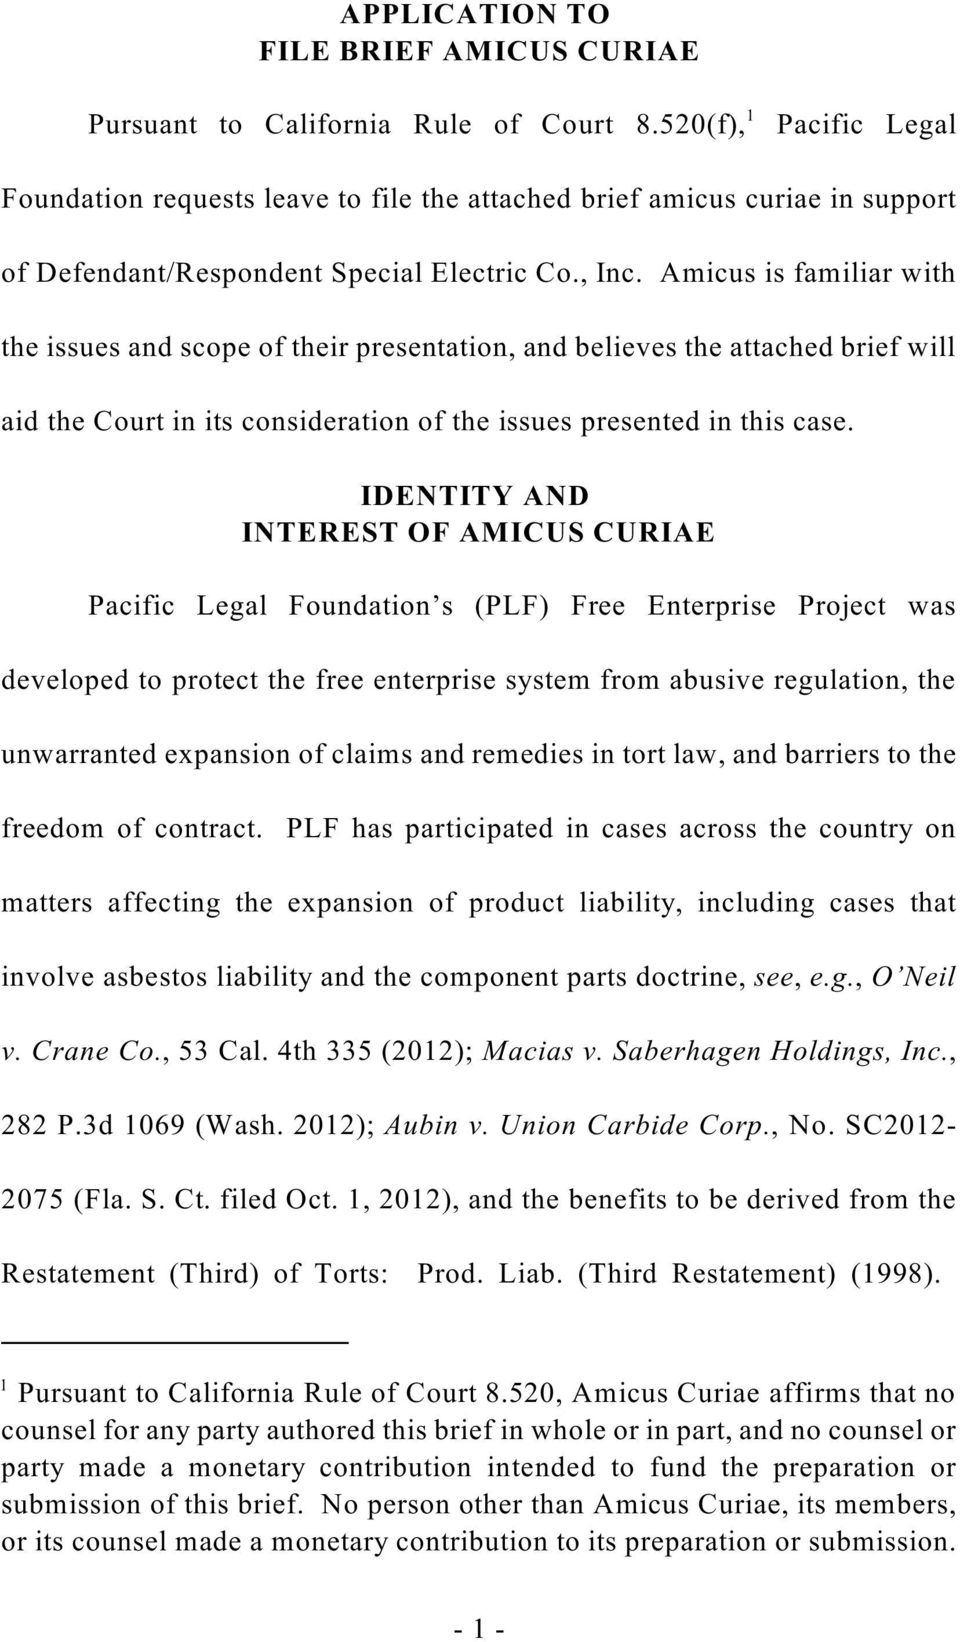 Amicus is familiar with the issues and scope of their presentation, and believes the attached brief will aid the Court in its consideration of the issues presented in this case.